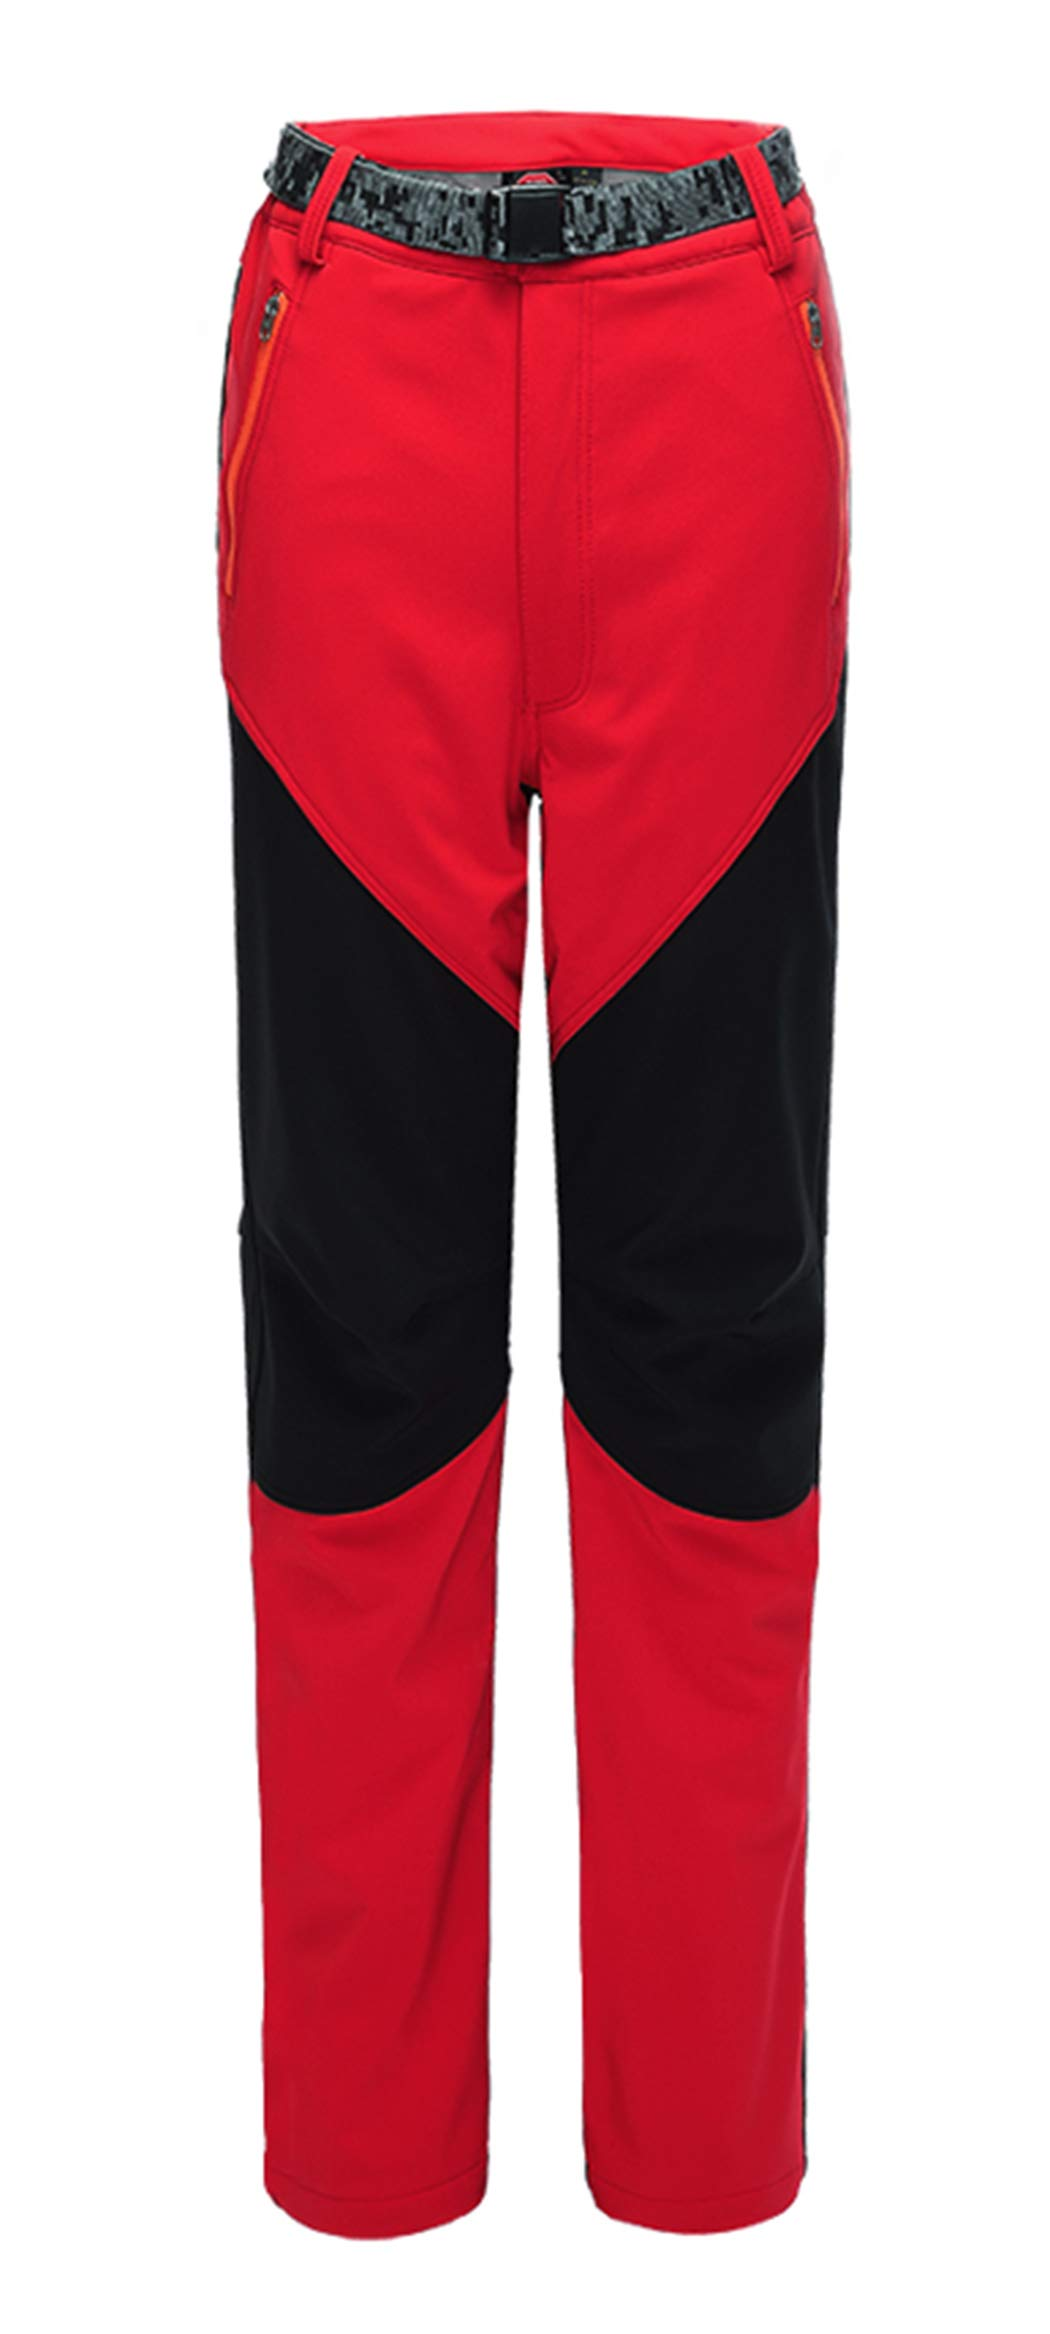 CATERTO Women's Outdoor Windproof Waterproof Softshell Fleece Snow Pants Red L/Tag3XL by CATERTO